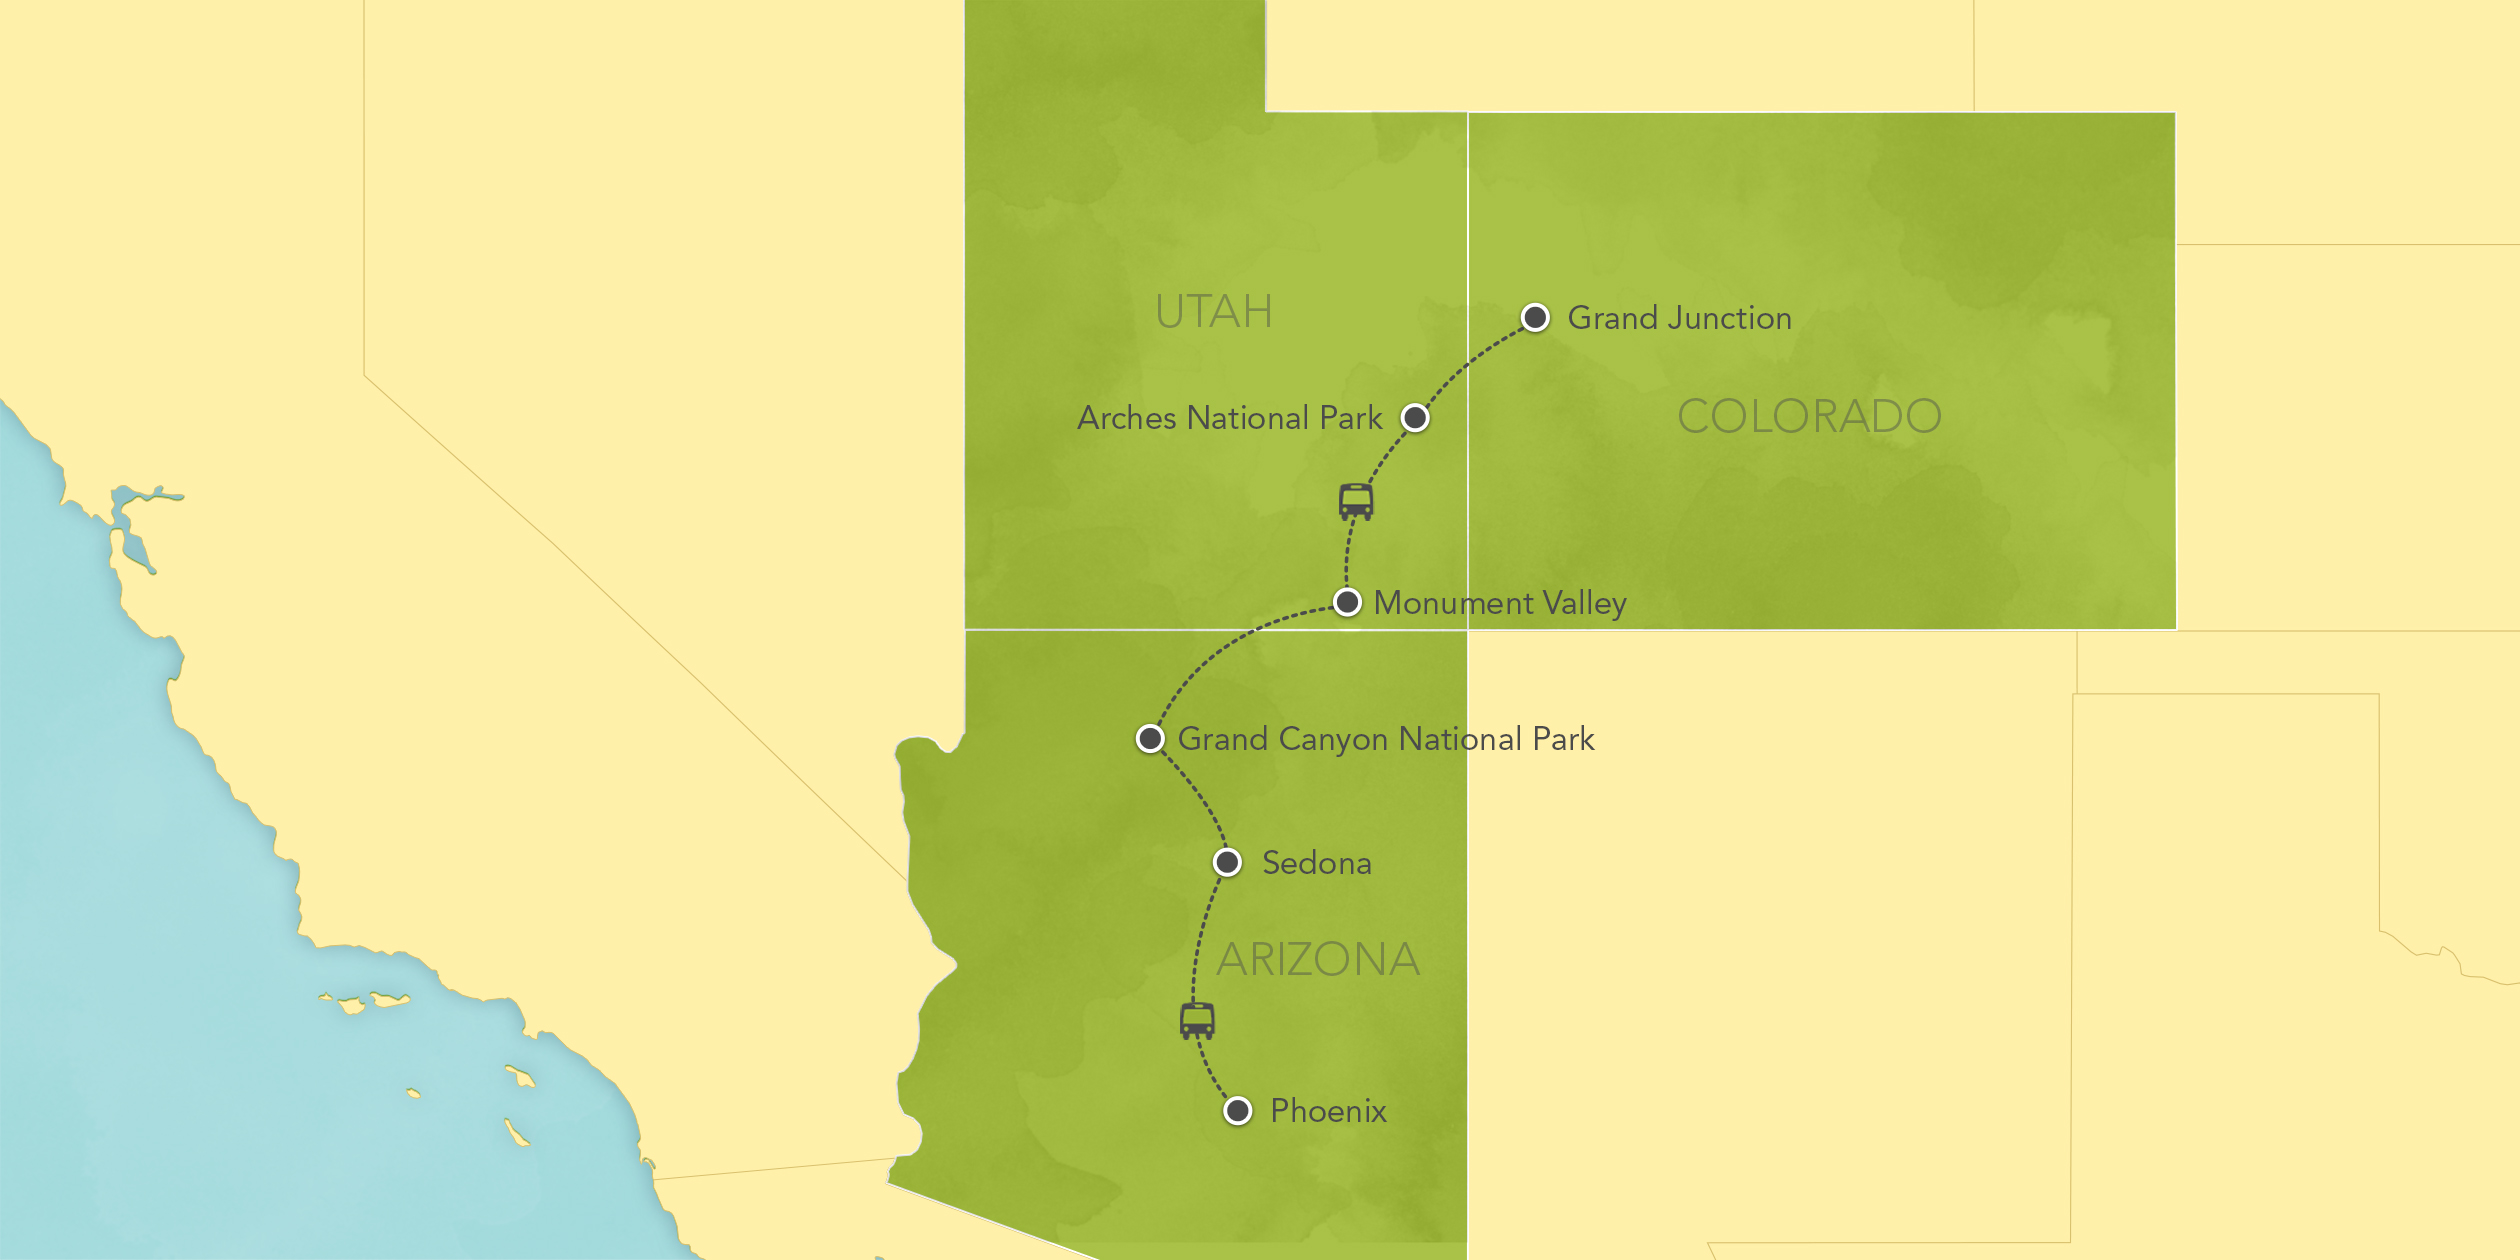 Itinerary map of Arizona & Utah: Grand Canyon, Moab, Arches National Park 2017